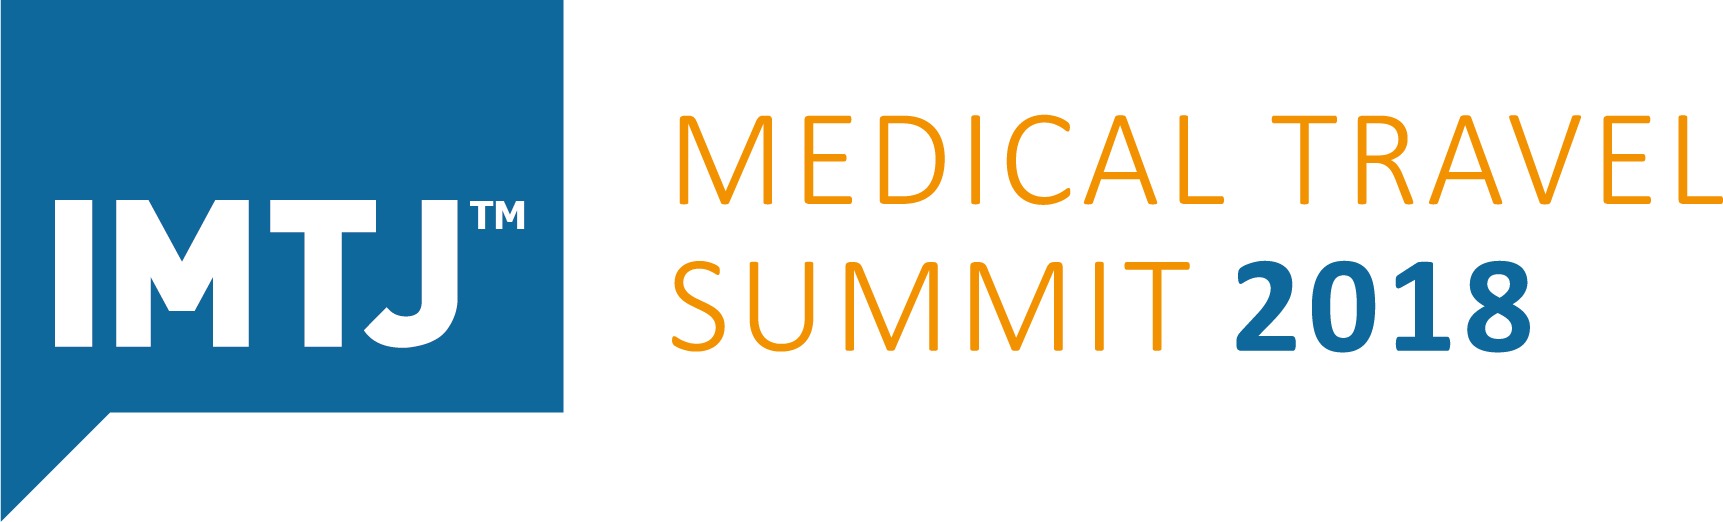 Medical Travel Summit 2018